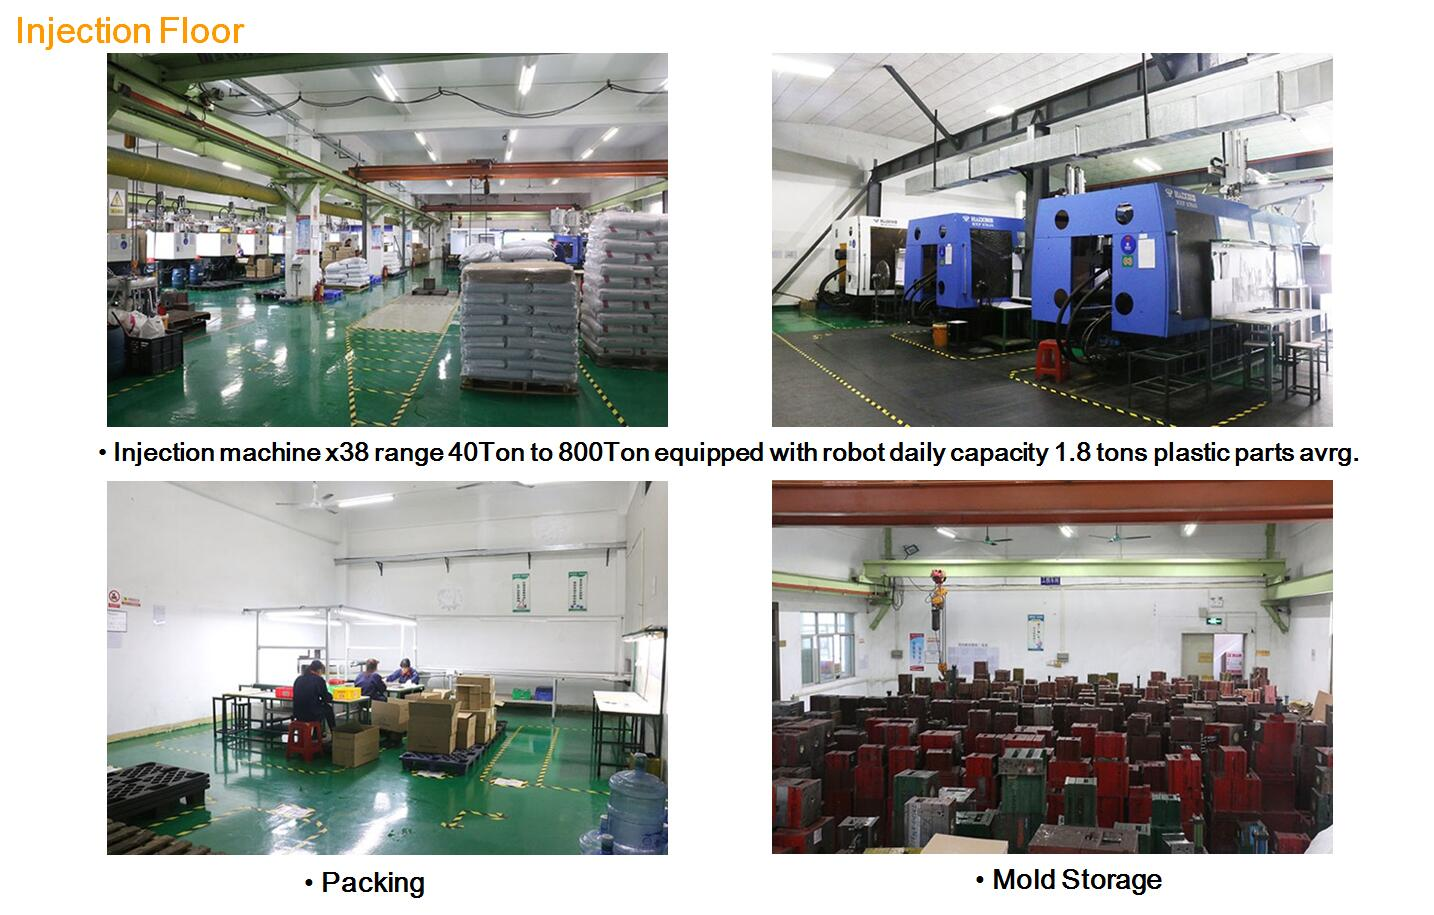 China Plastic Injection Manufacturing,Injection Molding Process And CNC Machining China | China Plastic Injection Molding Companies With Tooling And Injection Moulding Die Makers